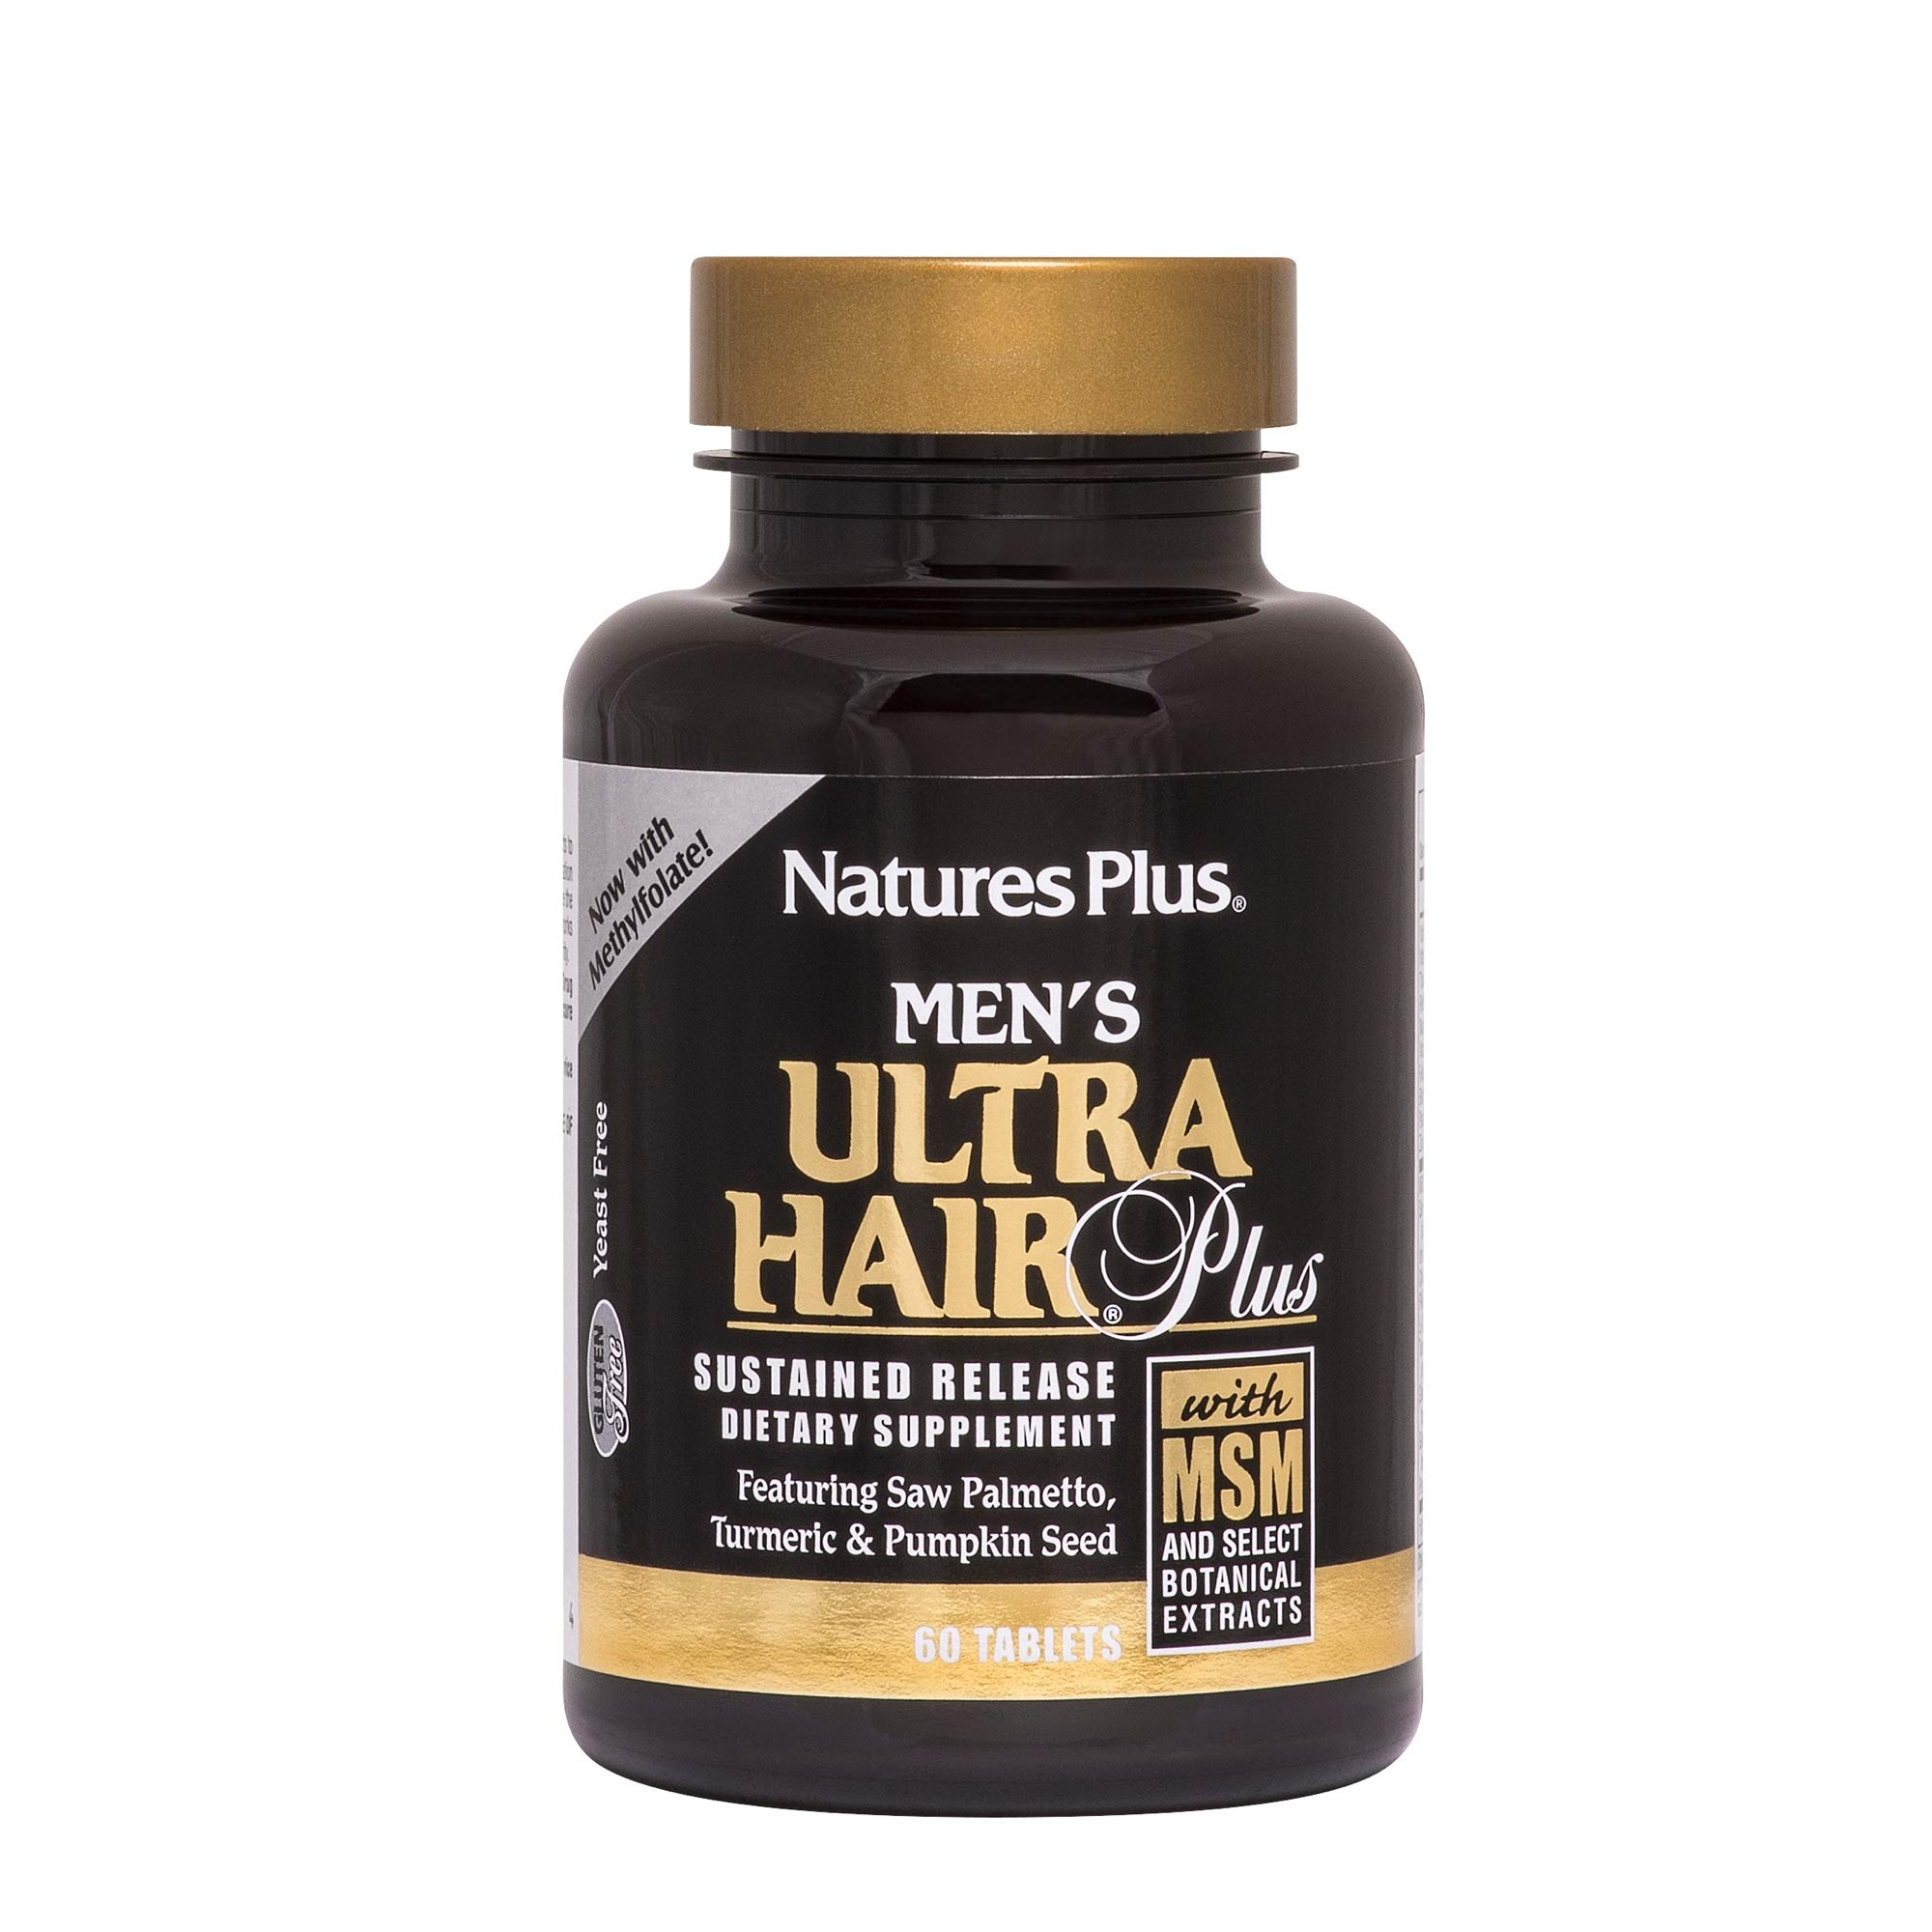 NaturesPlus Men's Ultra Hair Plus, Sustained Release - 60 Tablets - All-Natural Hair Growth Supplement for Men - Promotes Fuller, Healthier Hair - Gluten-Free - 30 Servings by Nature's Plus